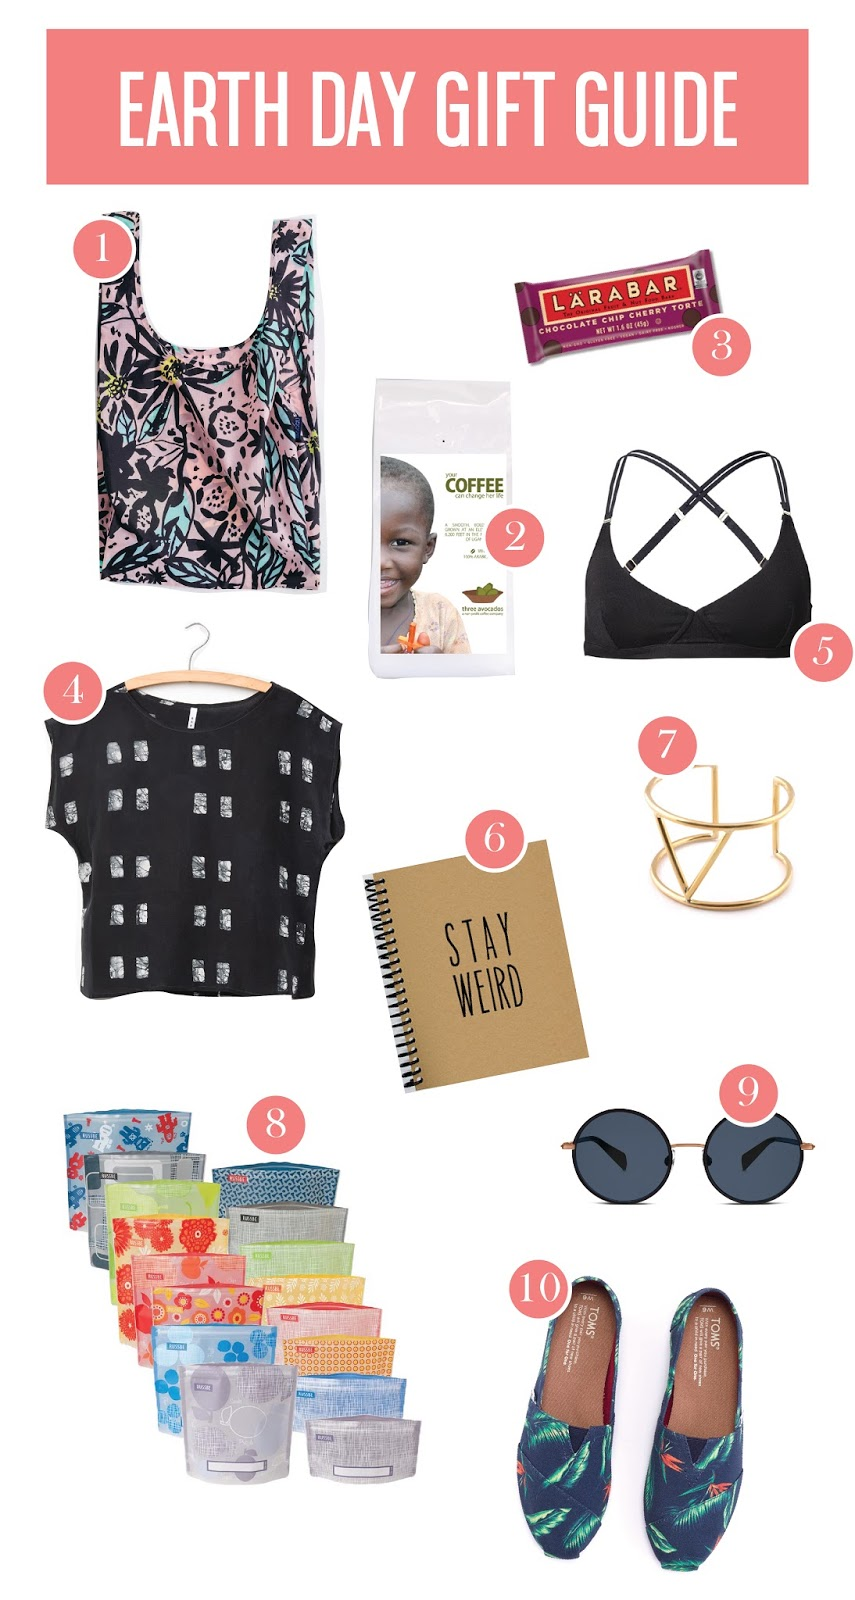 Your Earth Day Shopping Guide